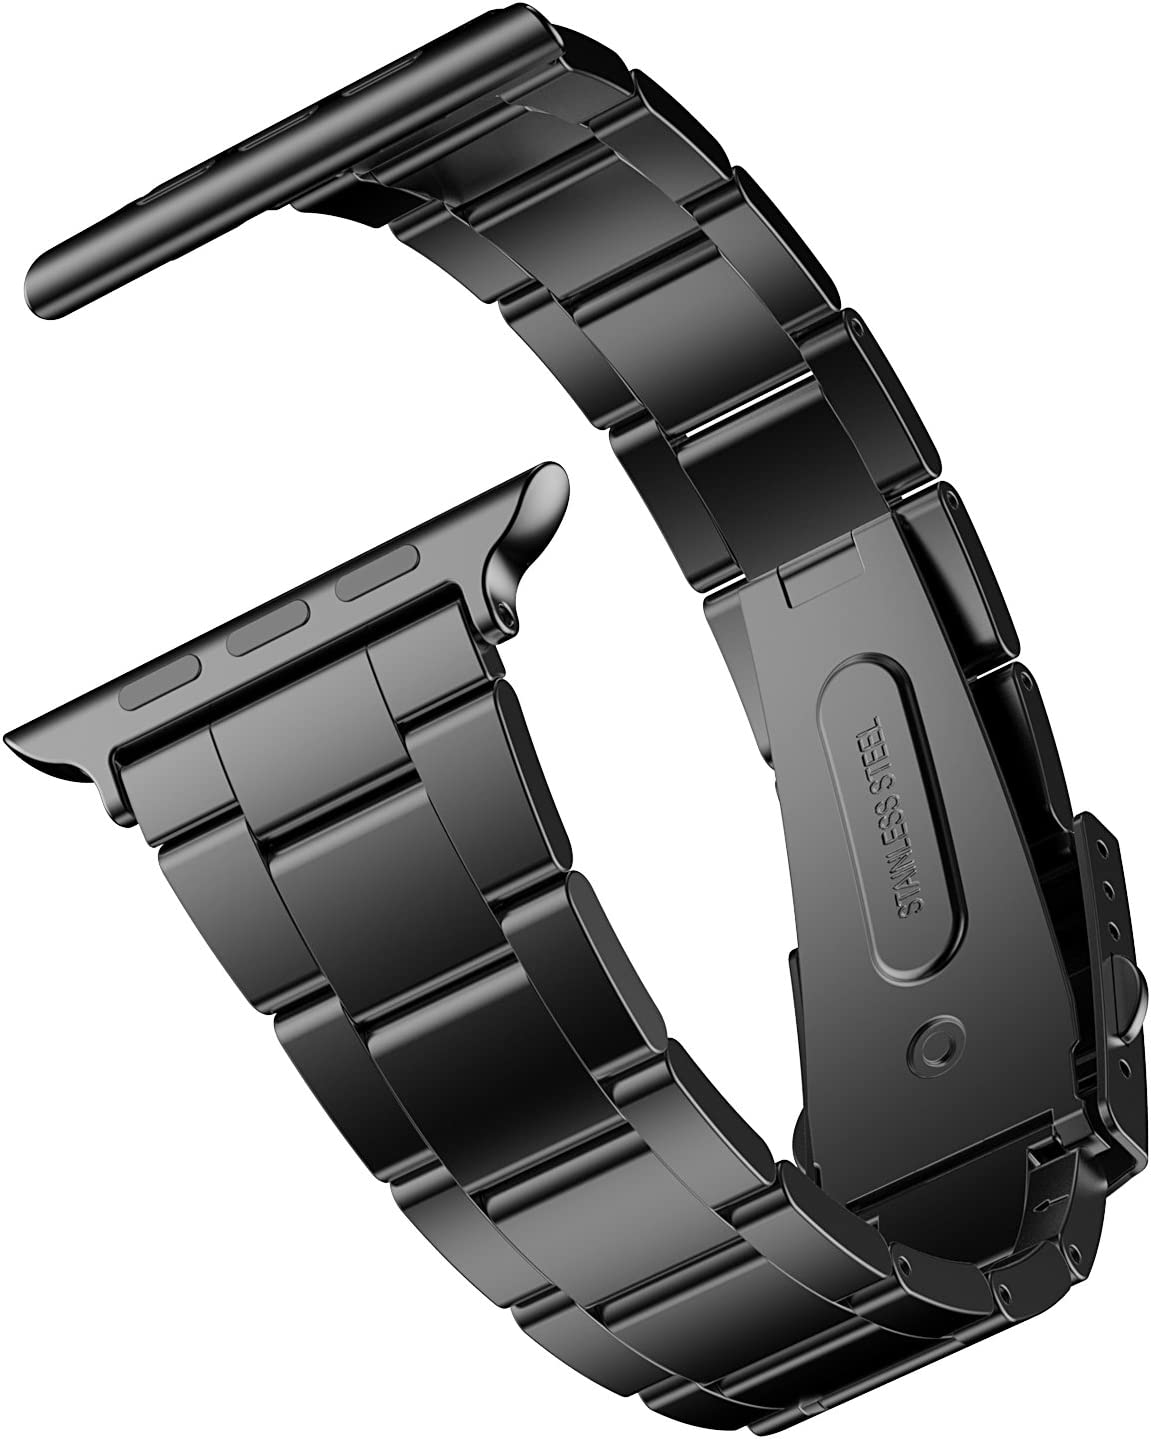 JETech Correa Reemplazable para Apple Watch 42mm y 44mm Series 1 2 3 4 5, Acero Inoxidable, Negro: Amazon.es: Electrónica